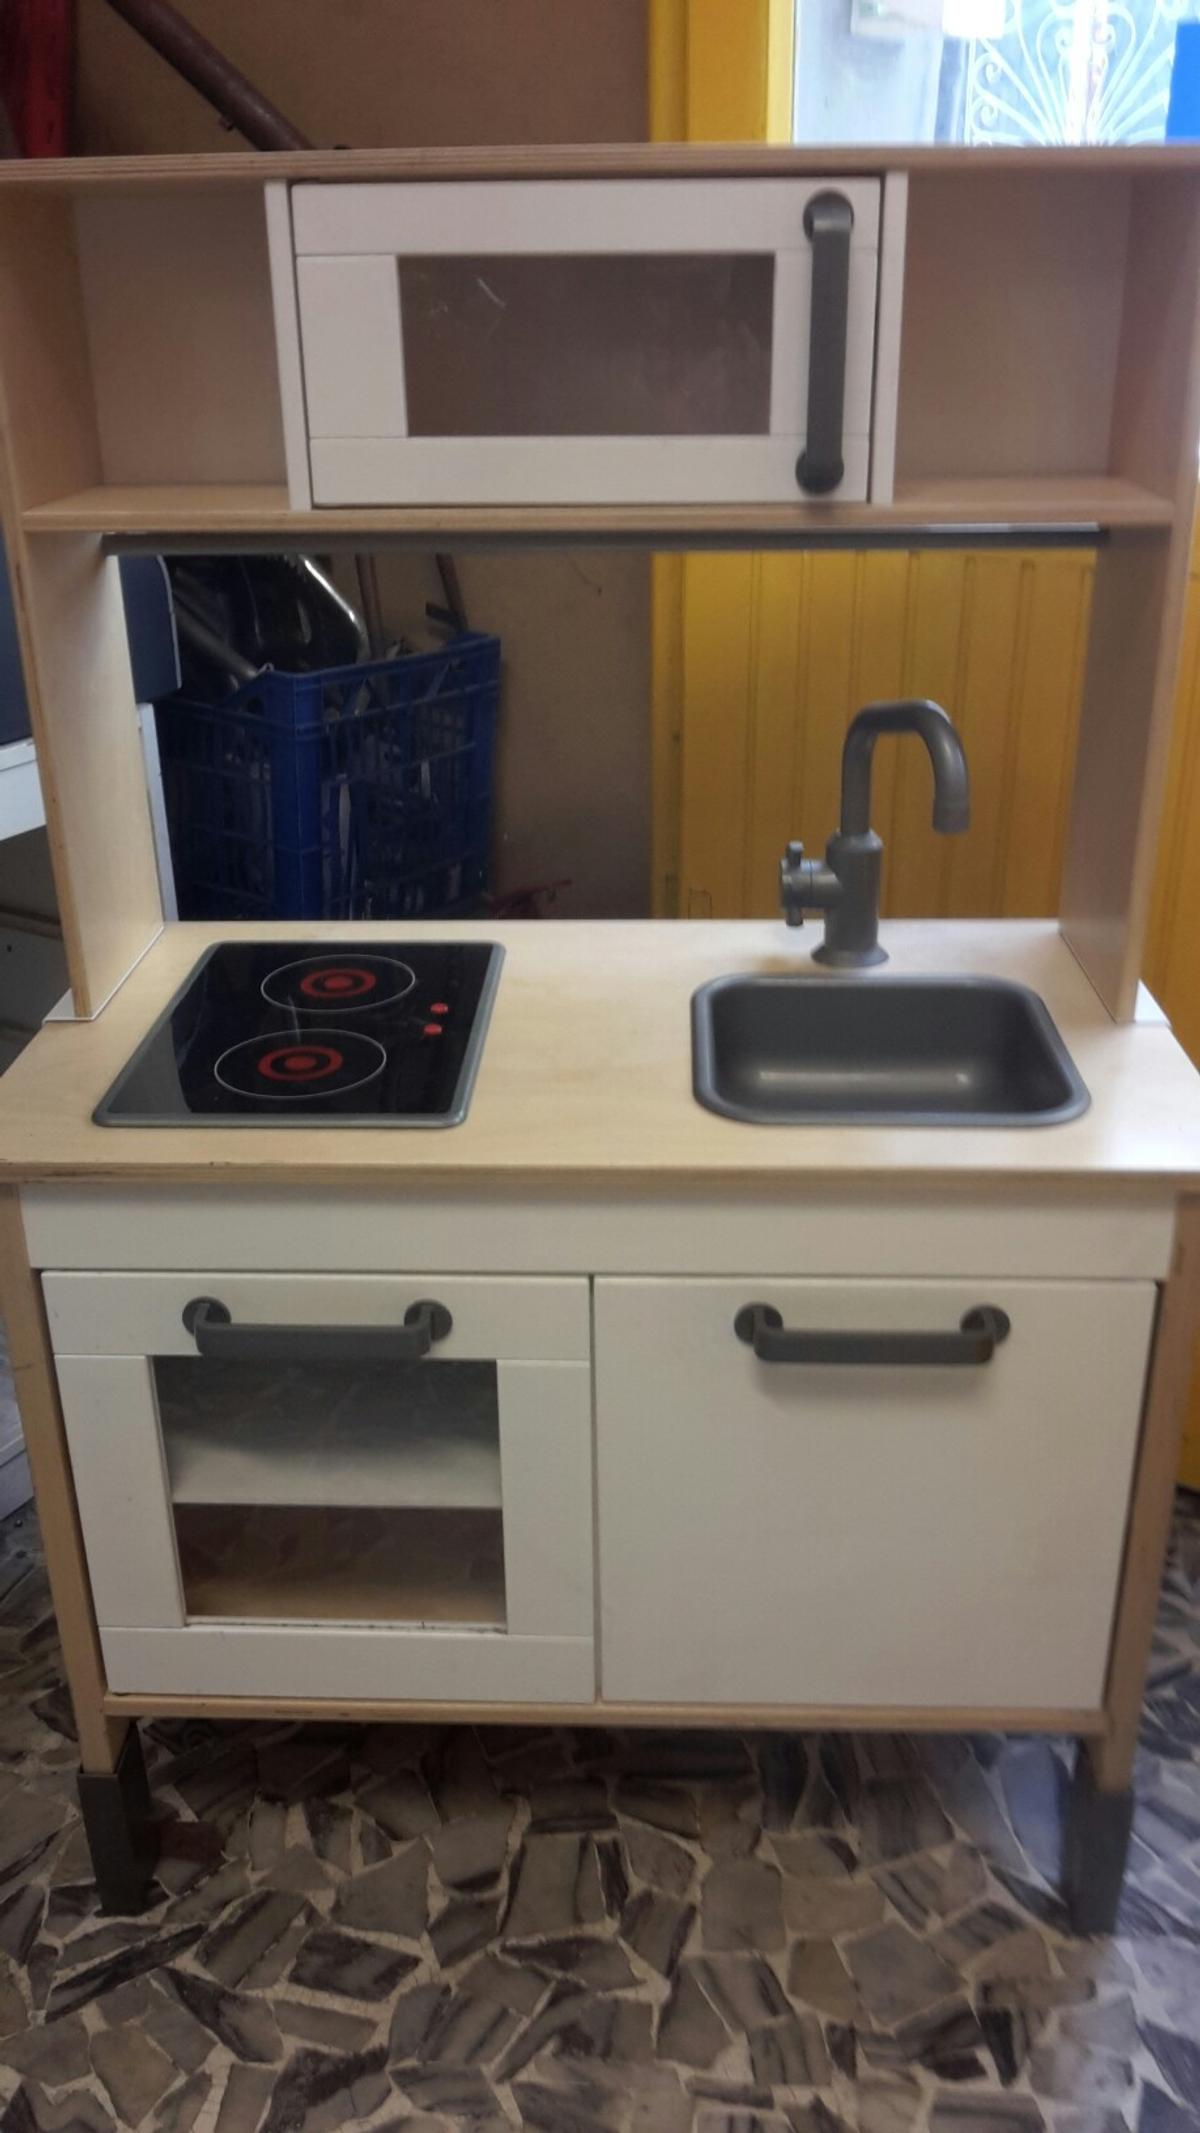 Cucina bambini ikea in 50129 Firenze for €50.00 for sale - Shpock